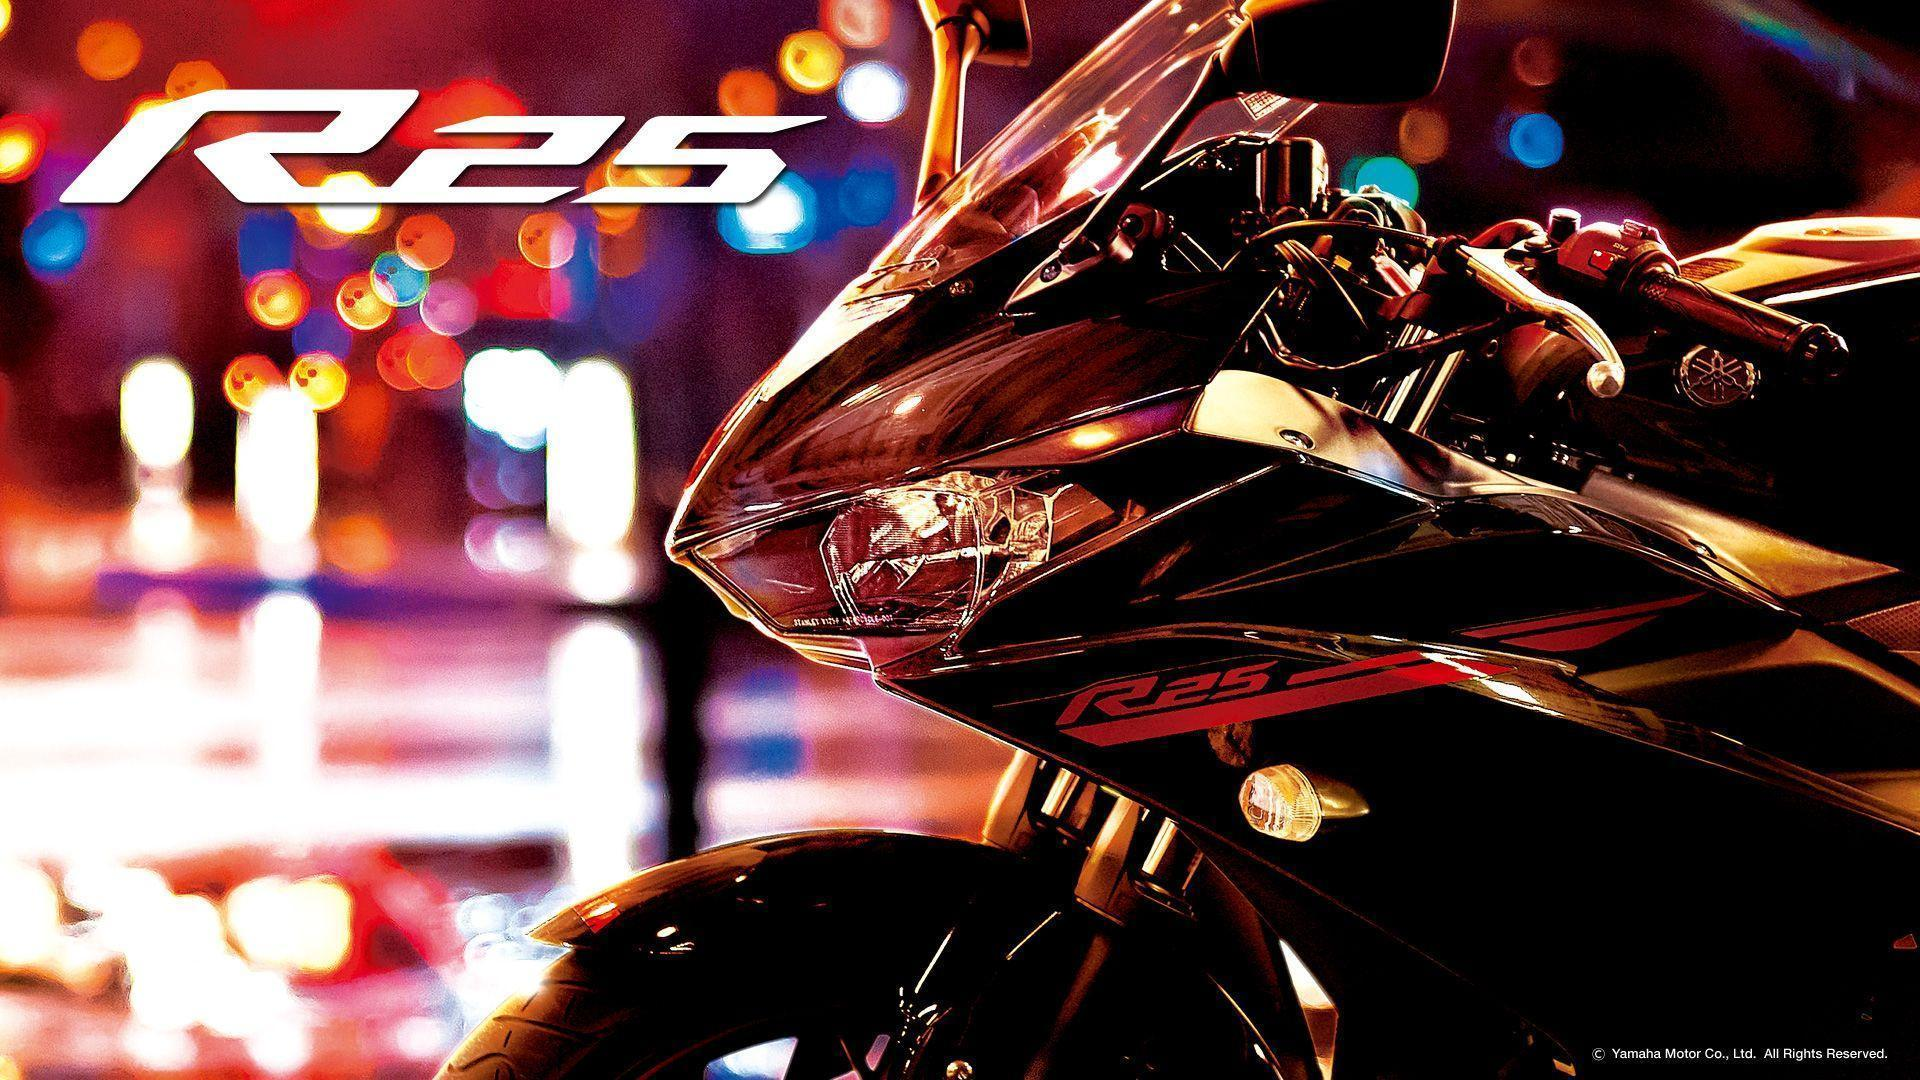 yamaha yzf-r25 wallpapers - wallpaper cave